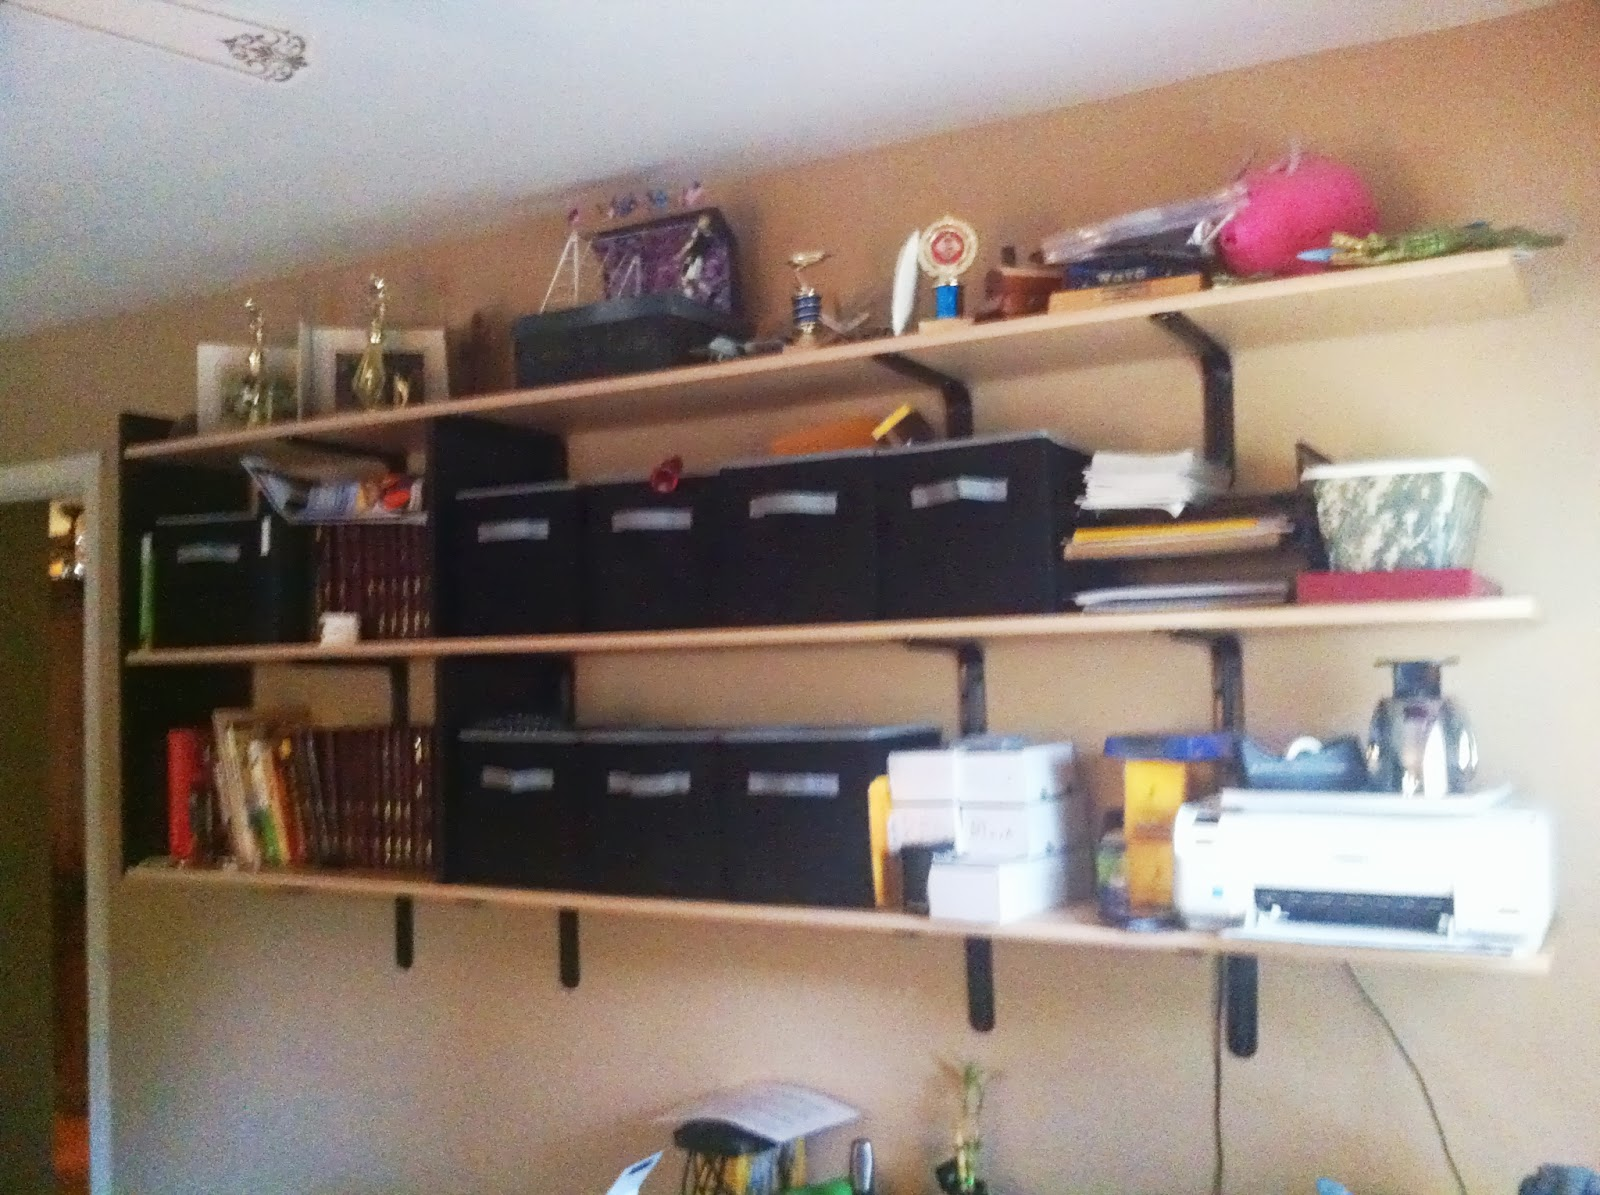 Basically Organized: Wall Shelves Give The Kids Tons Of